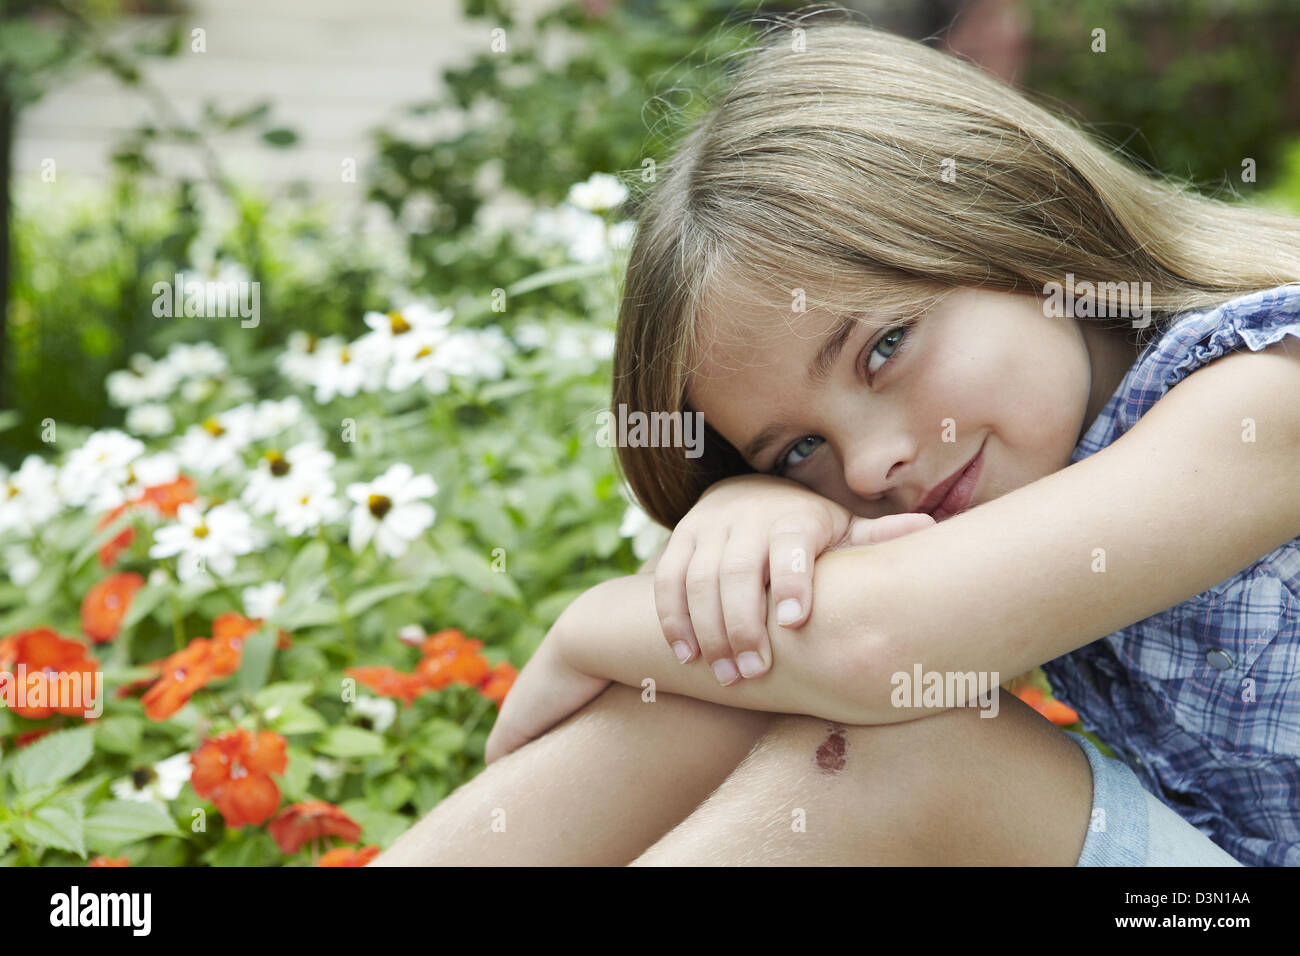 7 year old girl with skinned wounded knee - Stock Image